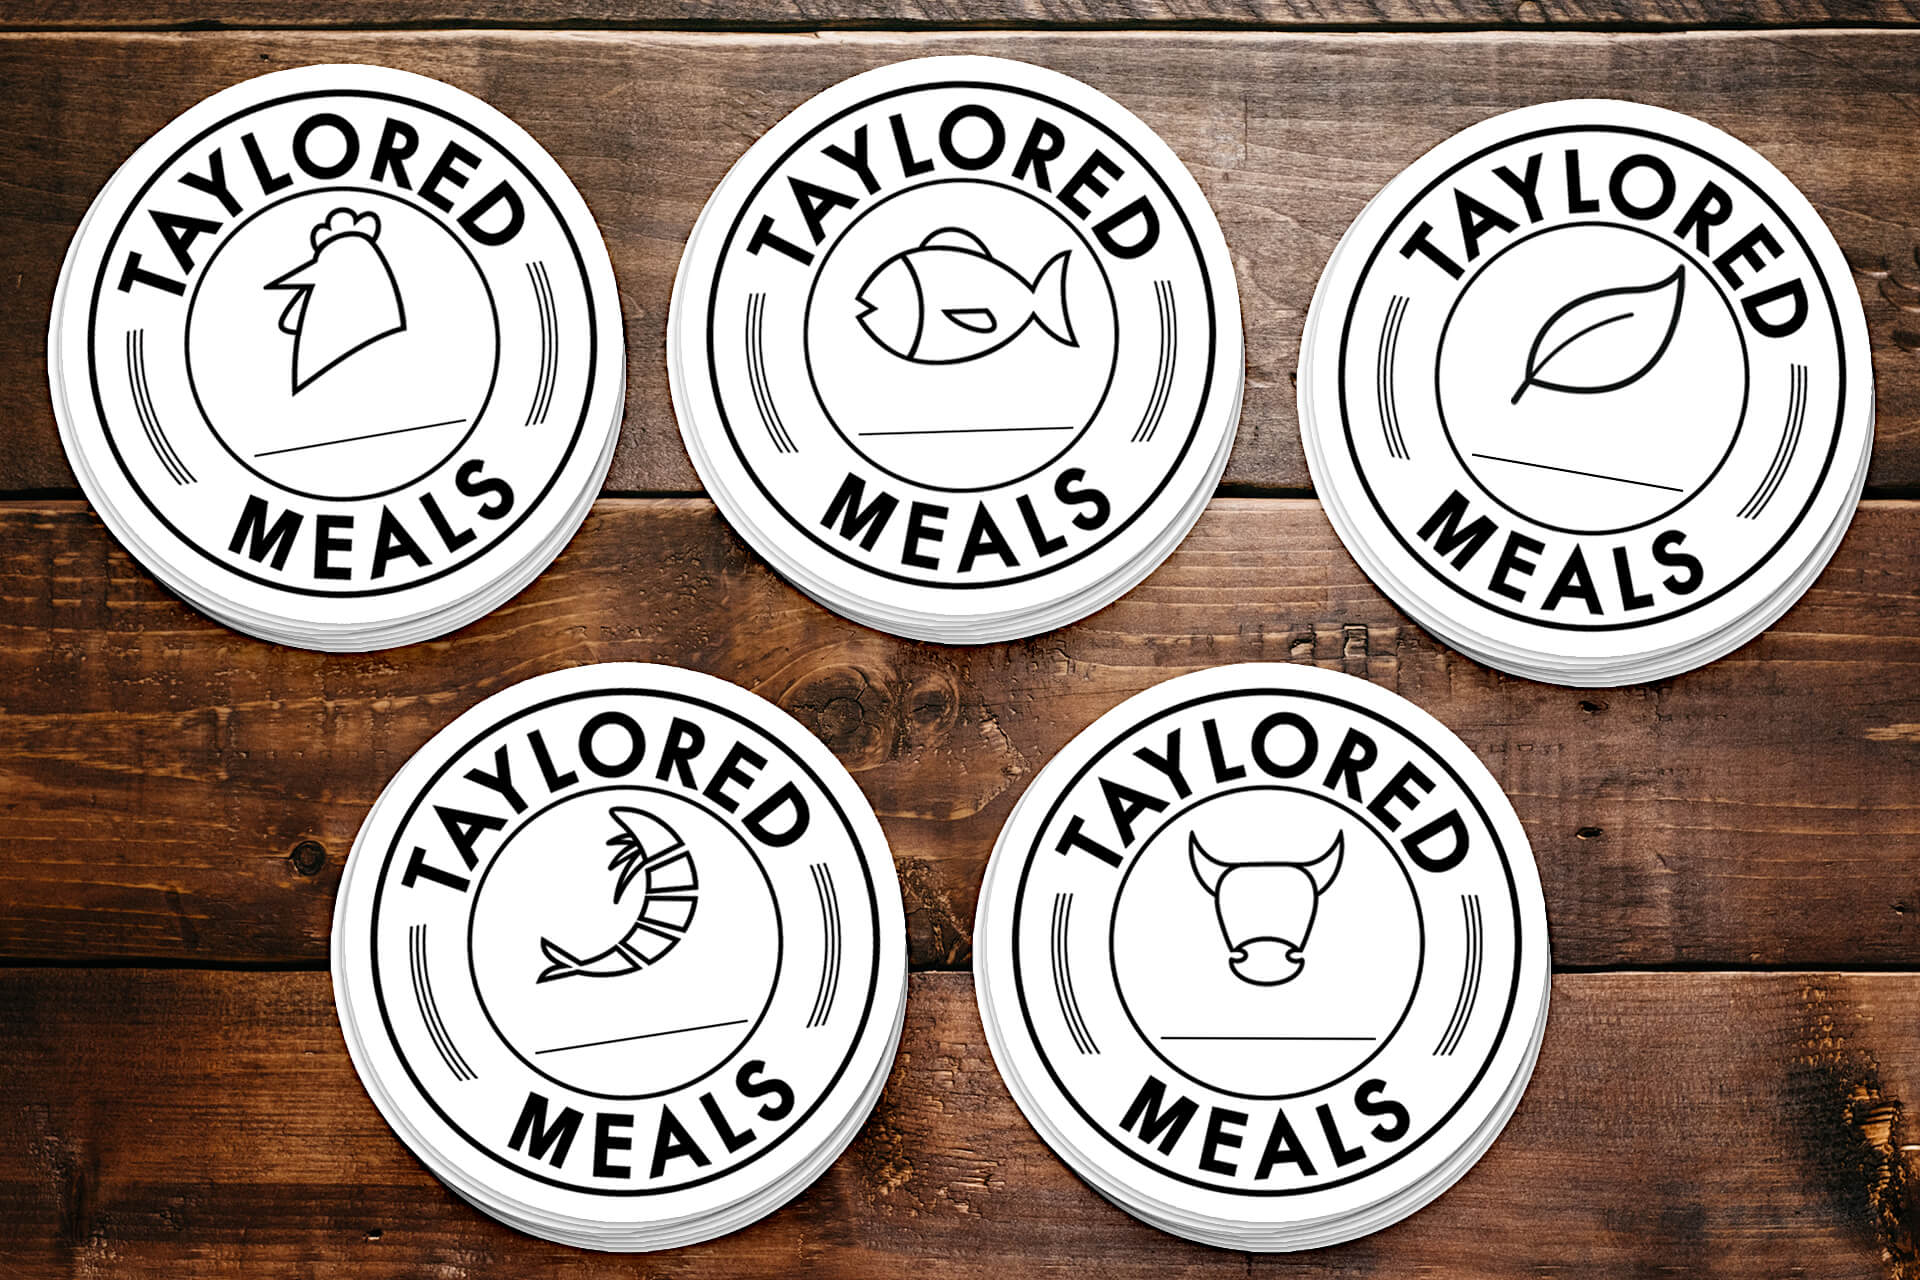 Taylored Meals